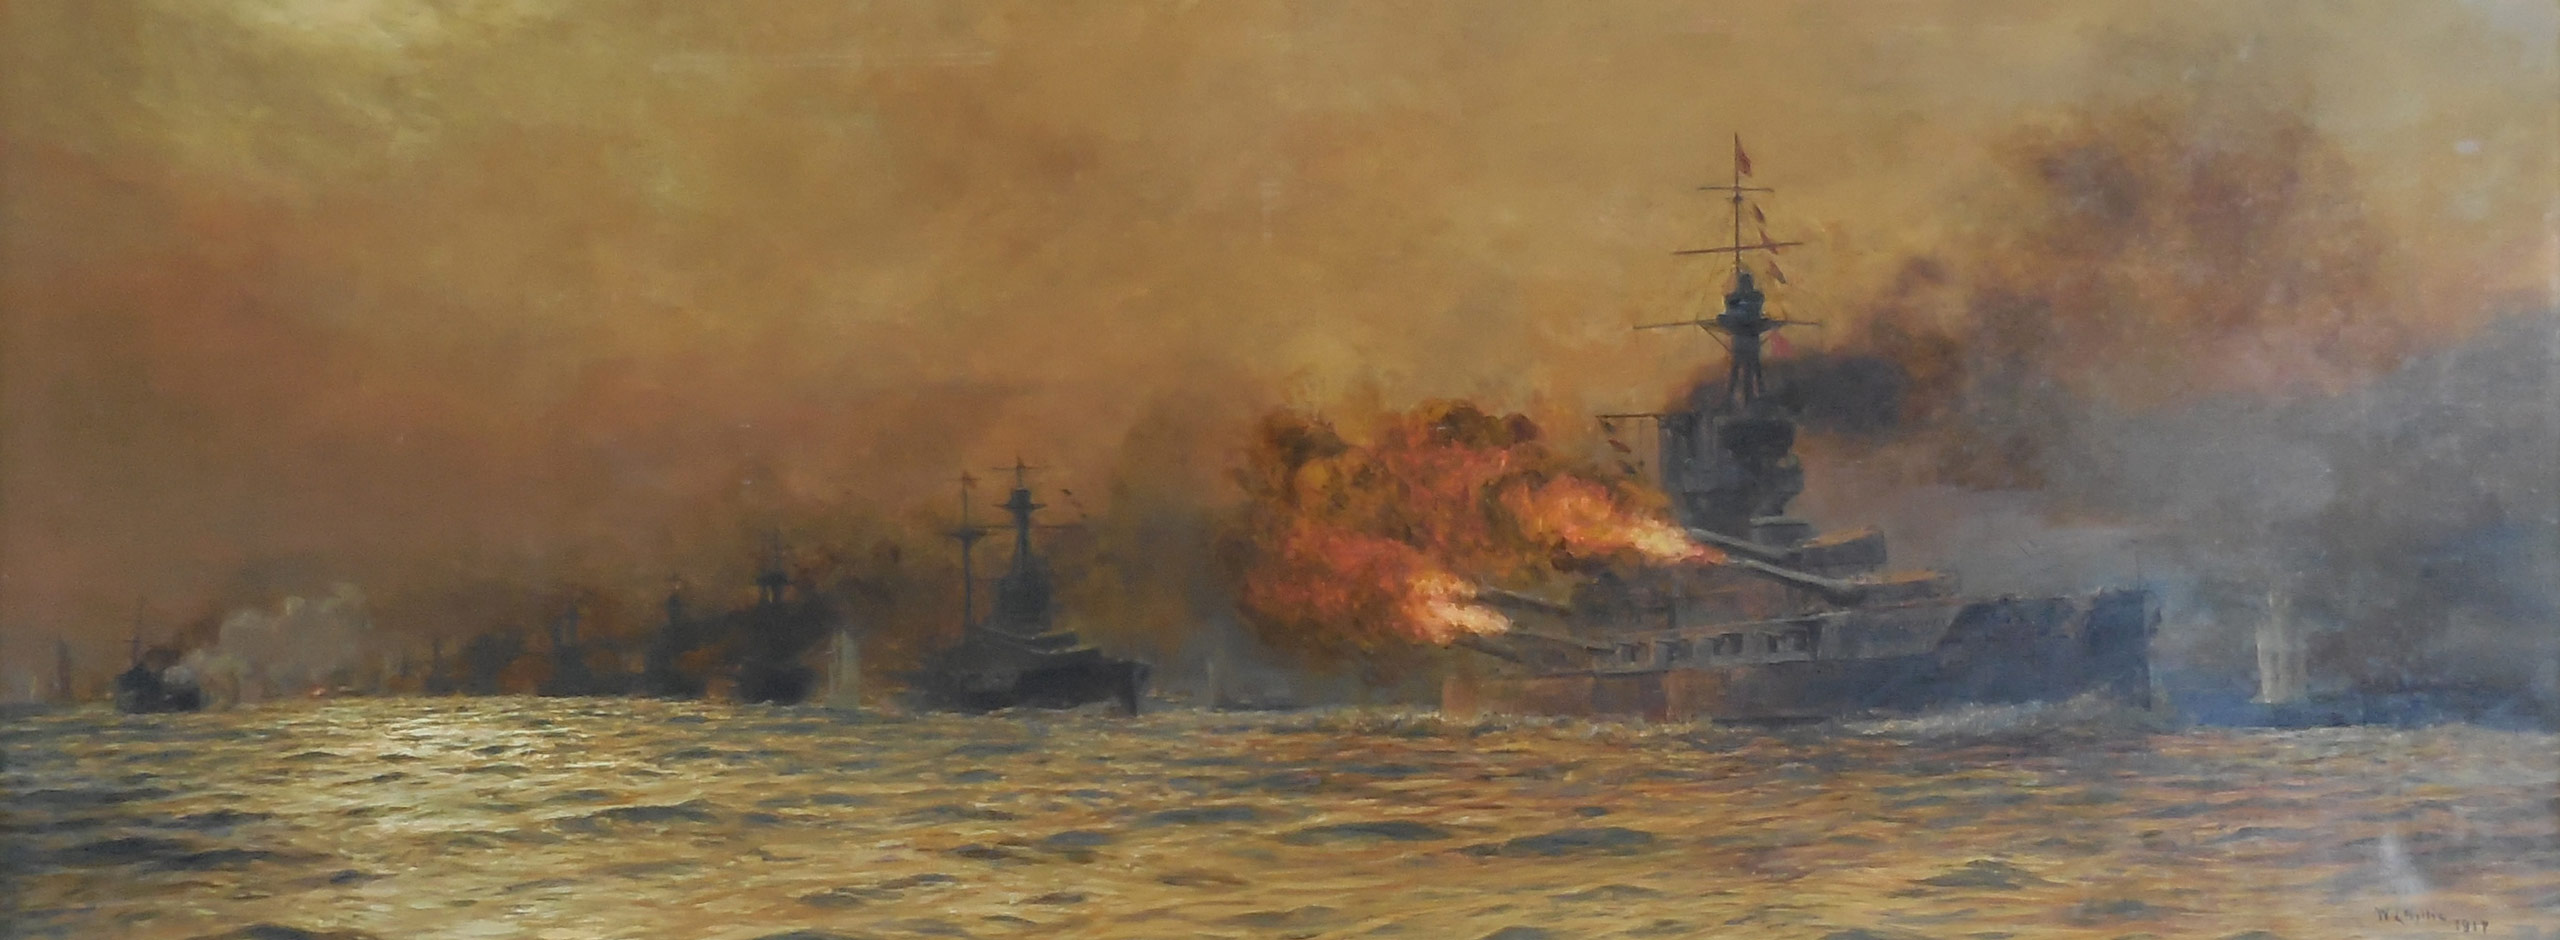 THE BATTLE OF JUTLAND CENTENARY INITIATIVE